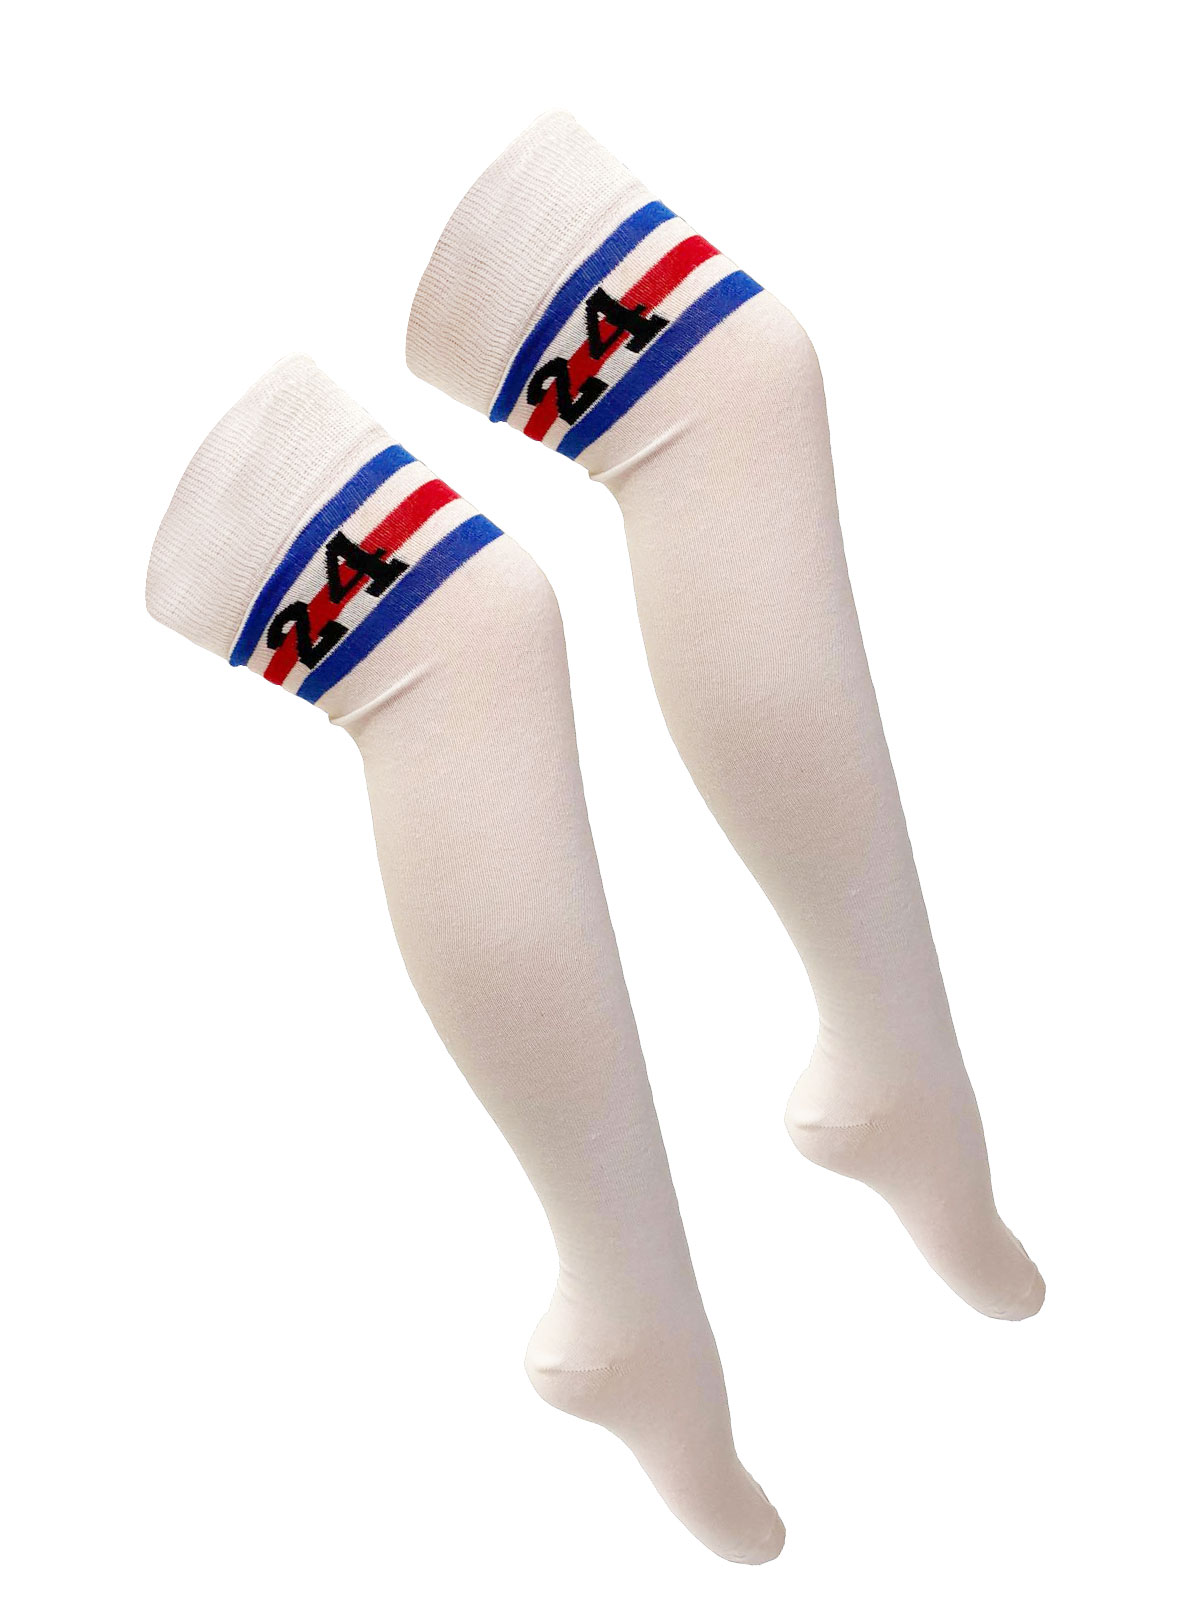 Referee White and Red /Blue with 24 OTK Socks (12 Pairs)